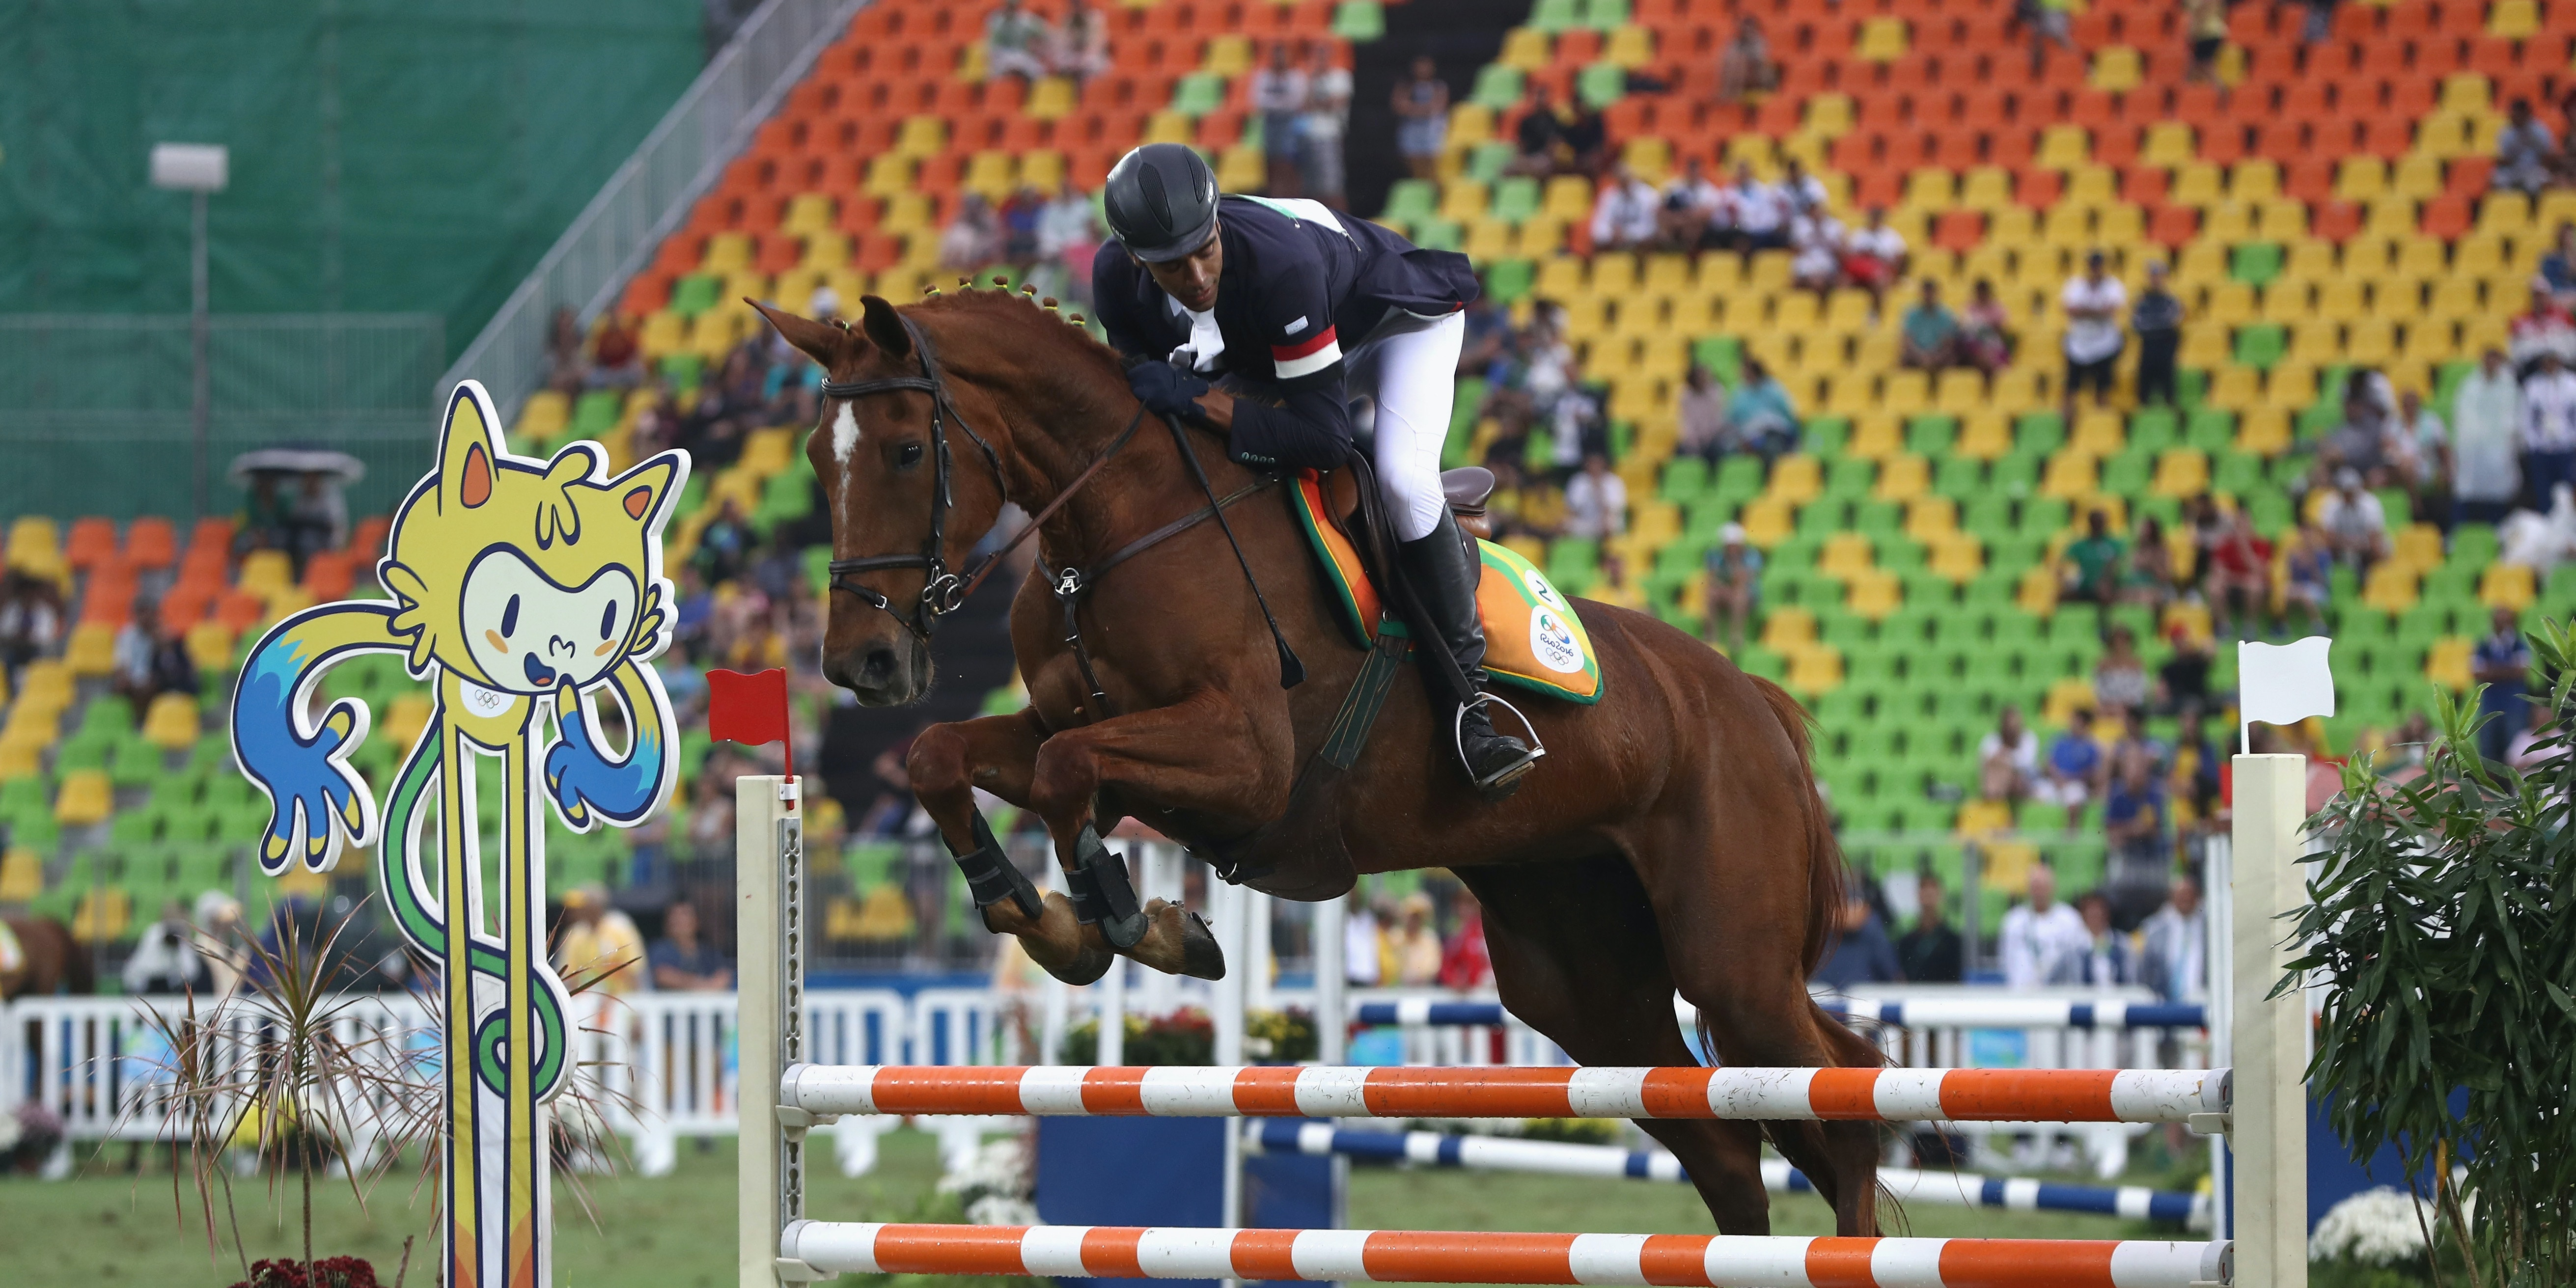 No cloned horses appeared at the Rio Olympics, though they're now permitted.